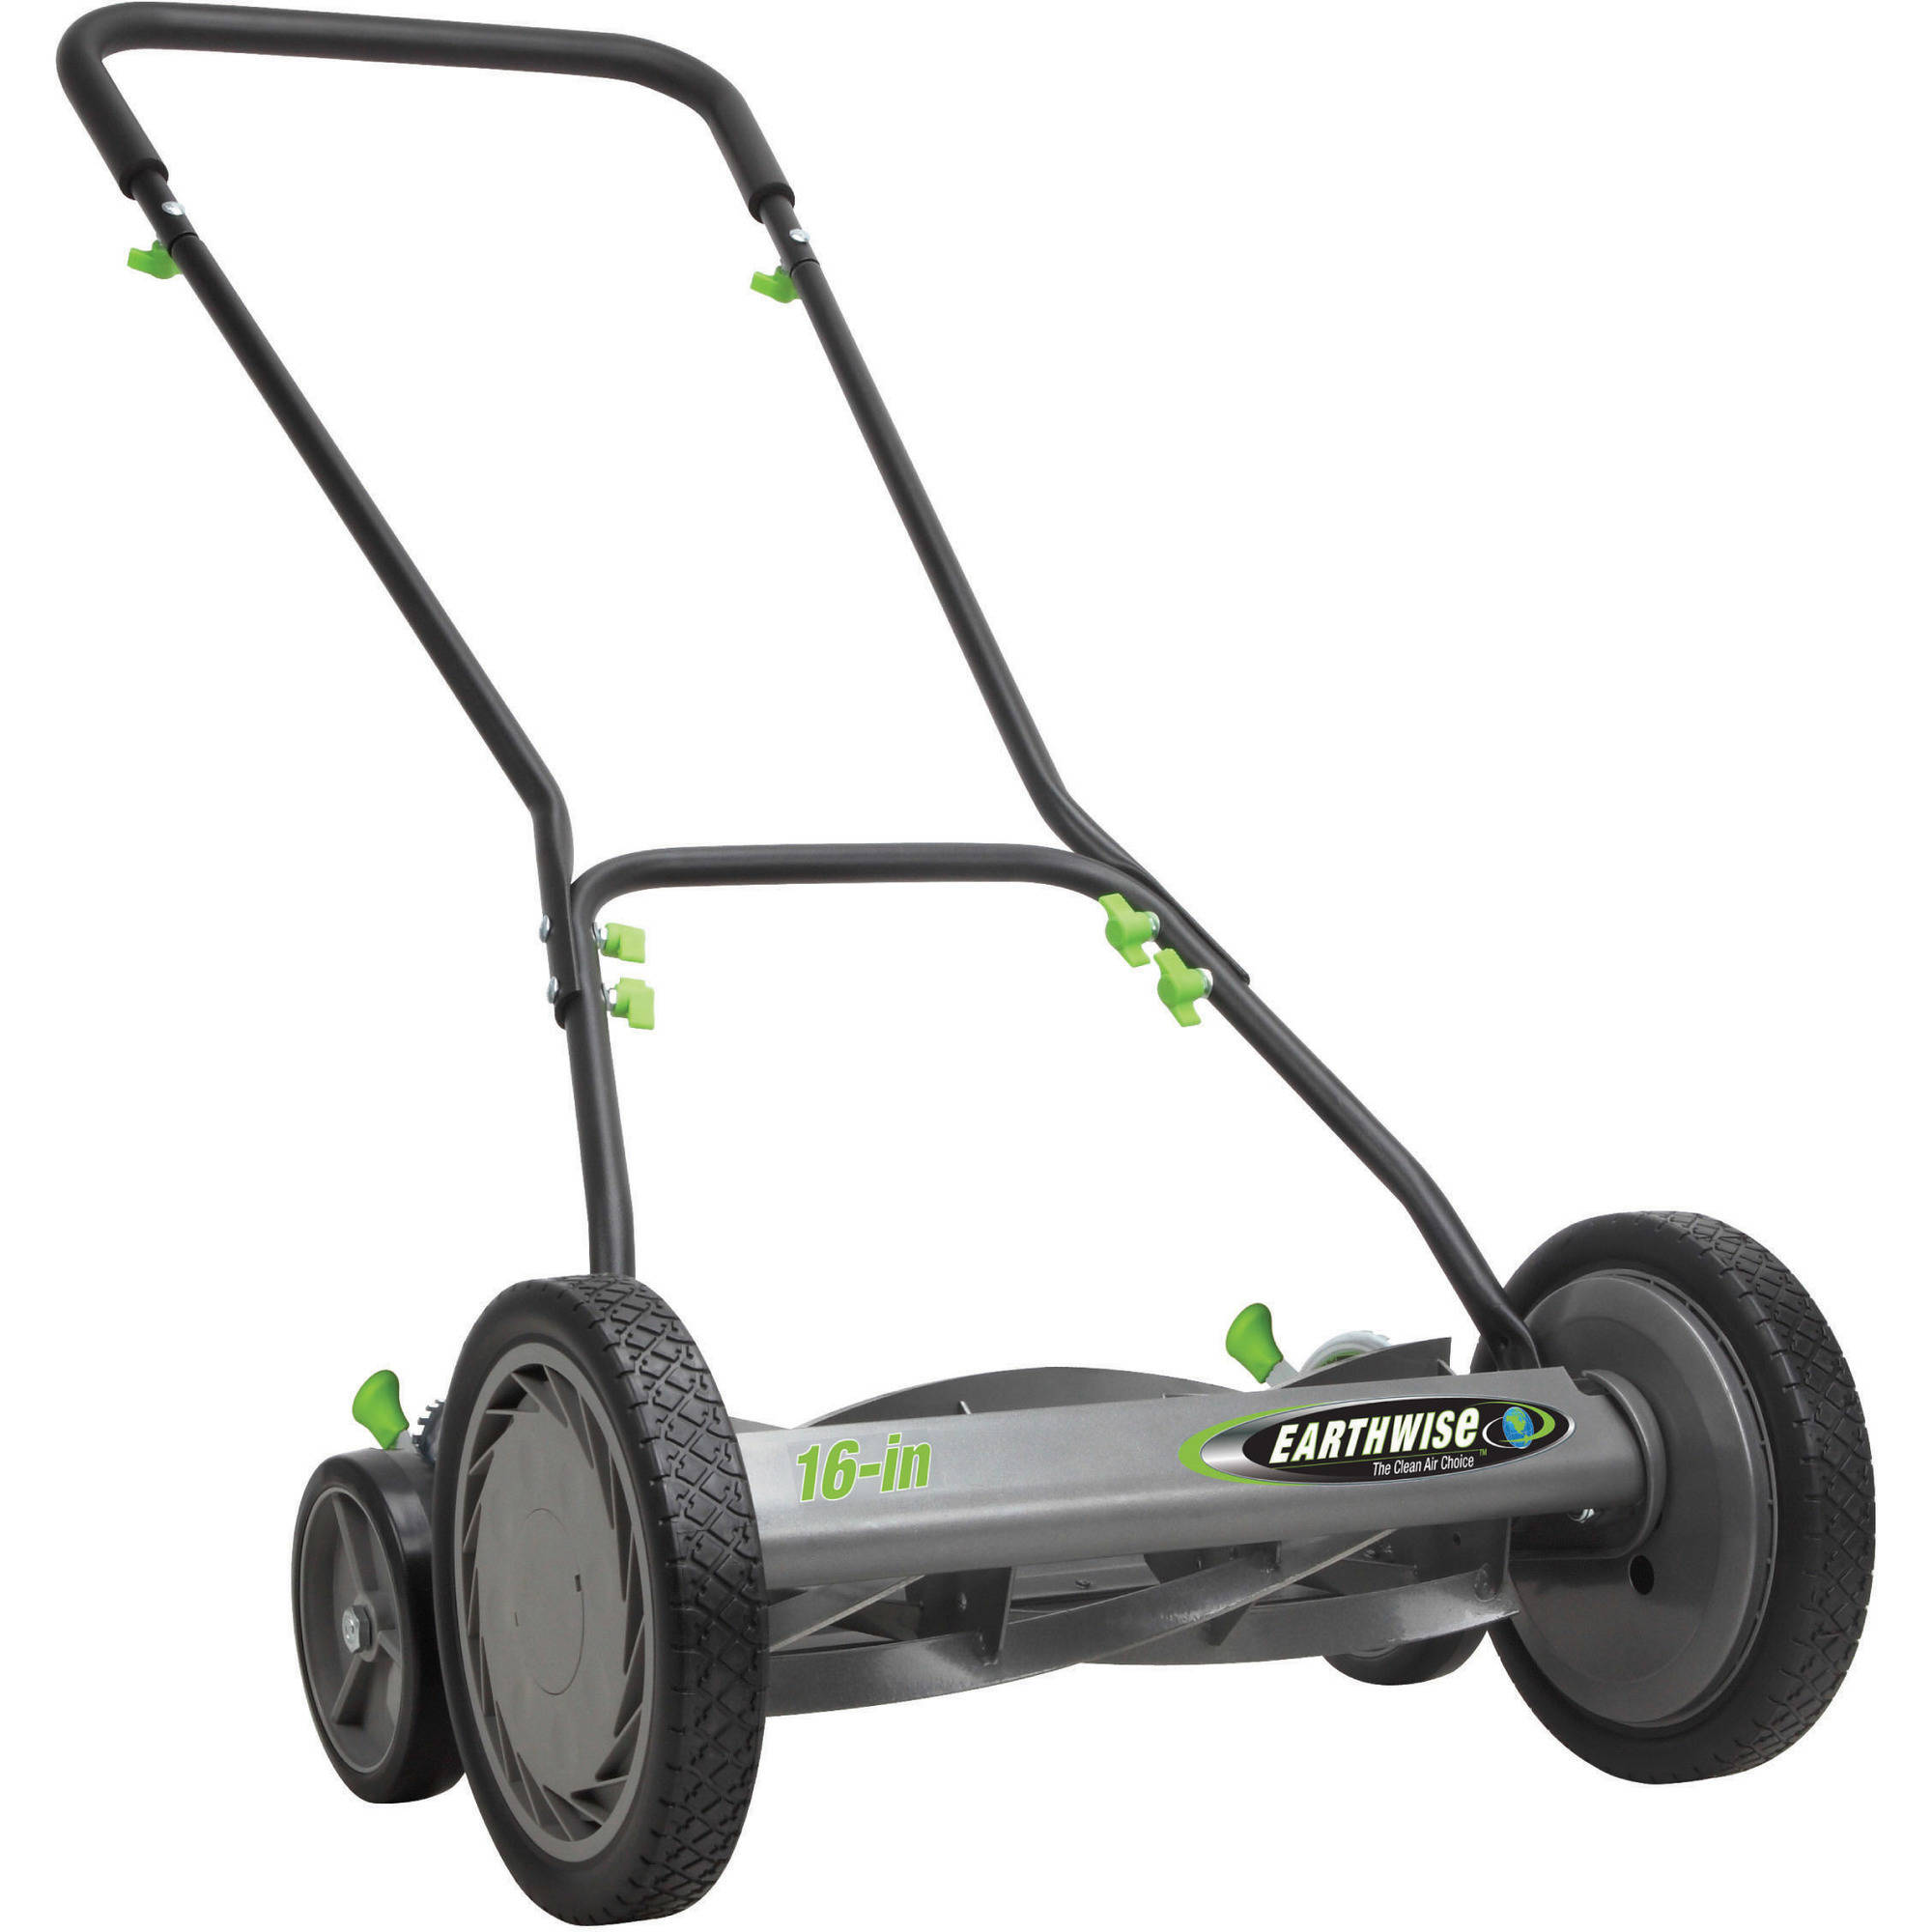 "Earthwise 18"" 5-Blade Push Reel Lawn Mower"